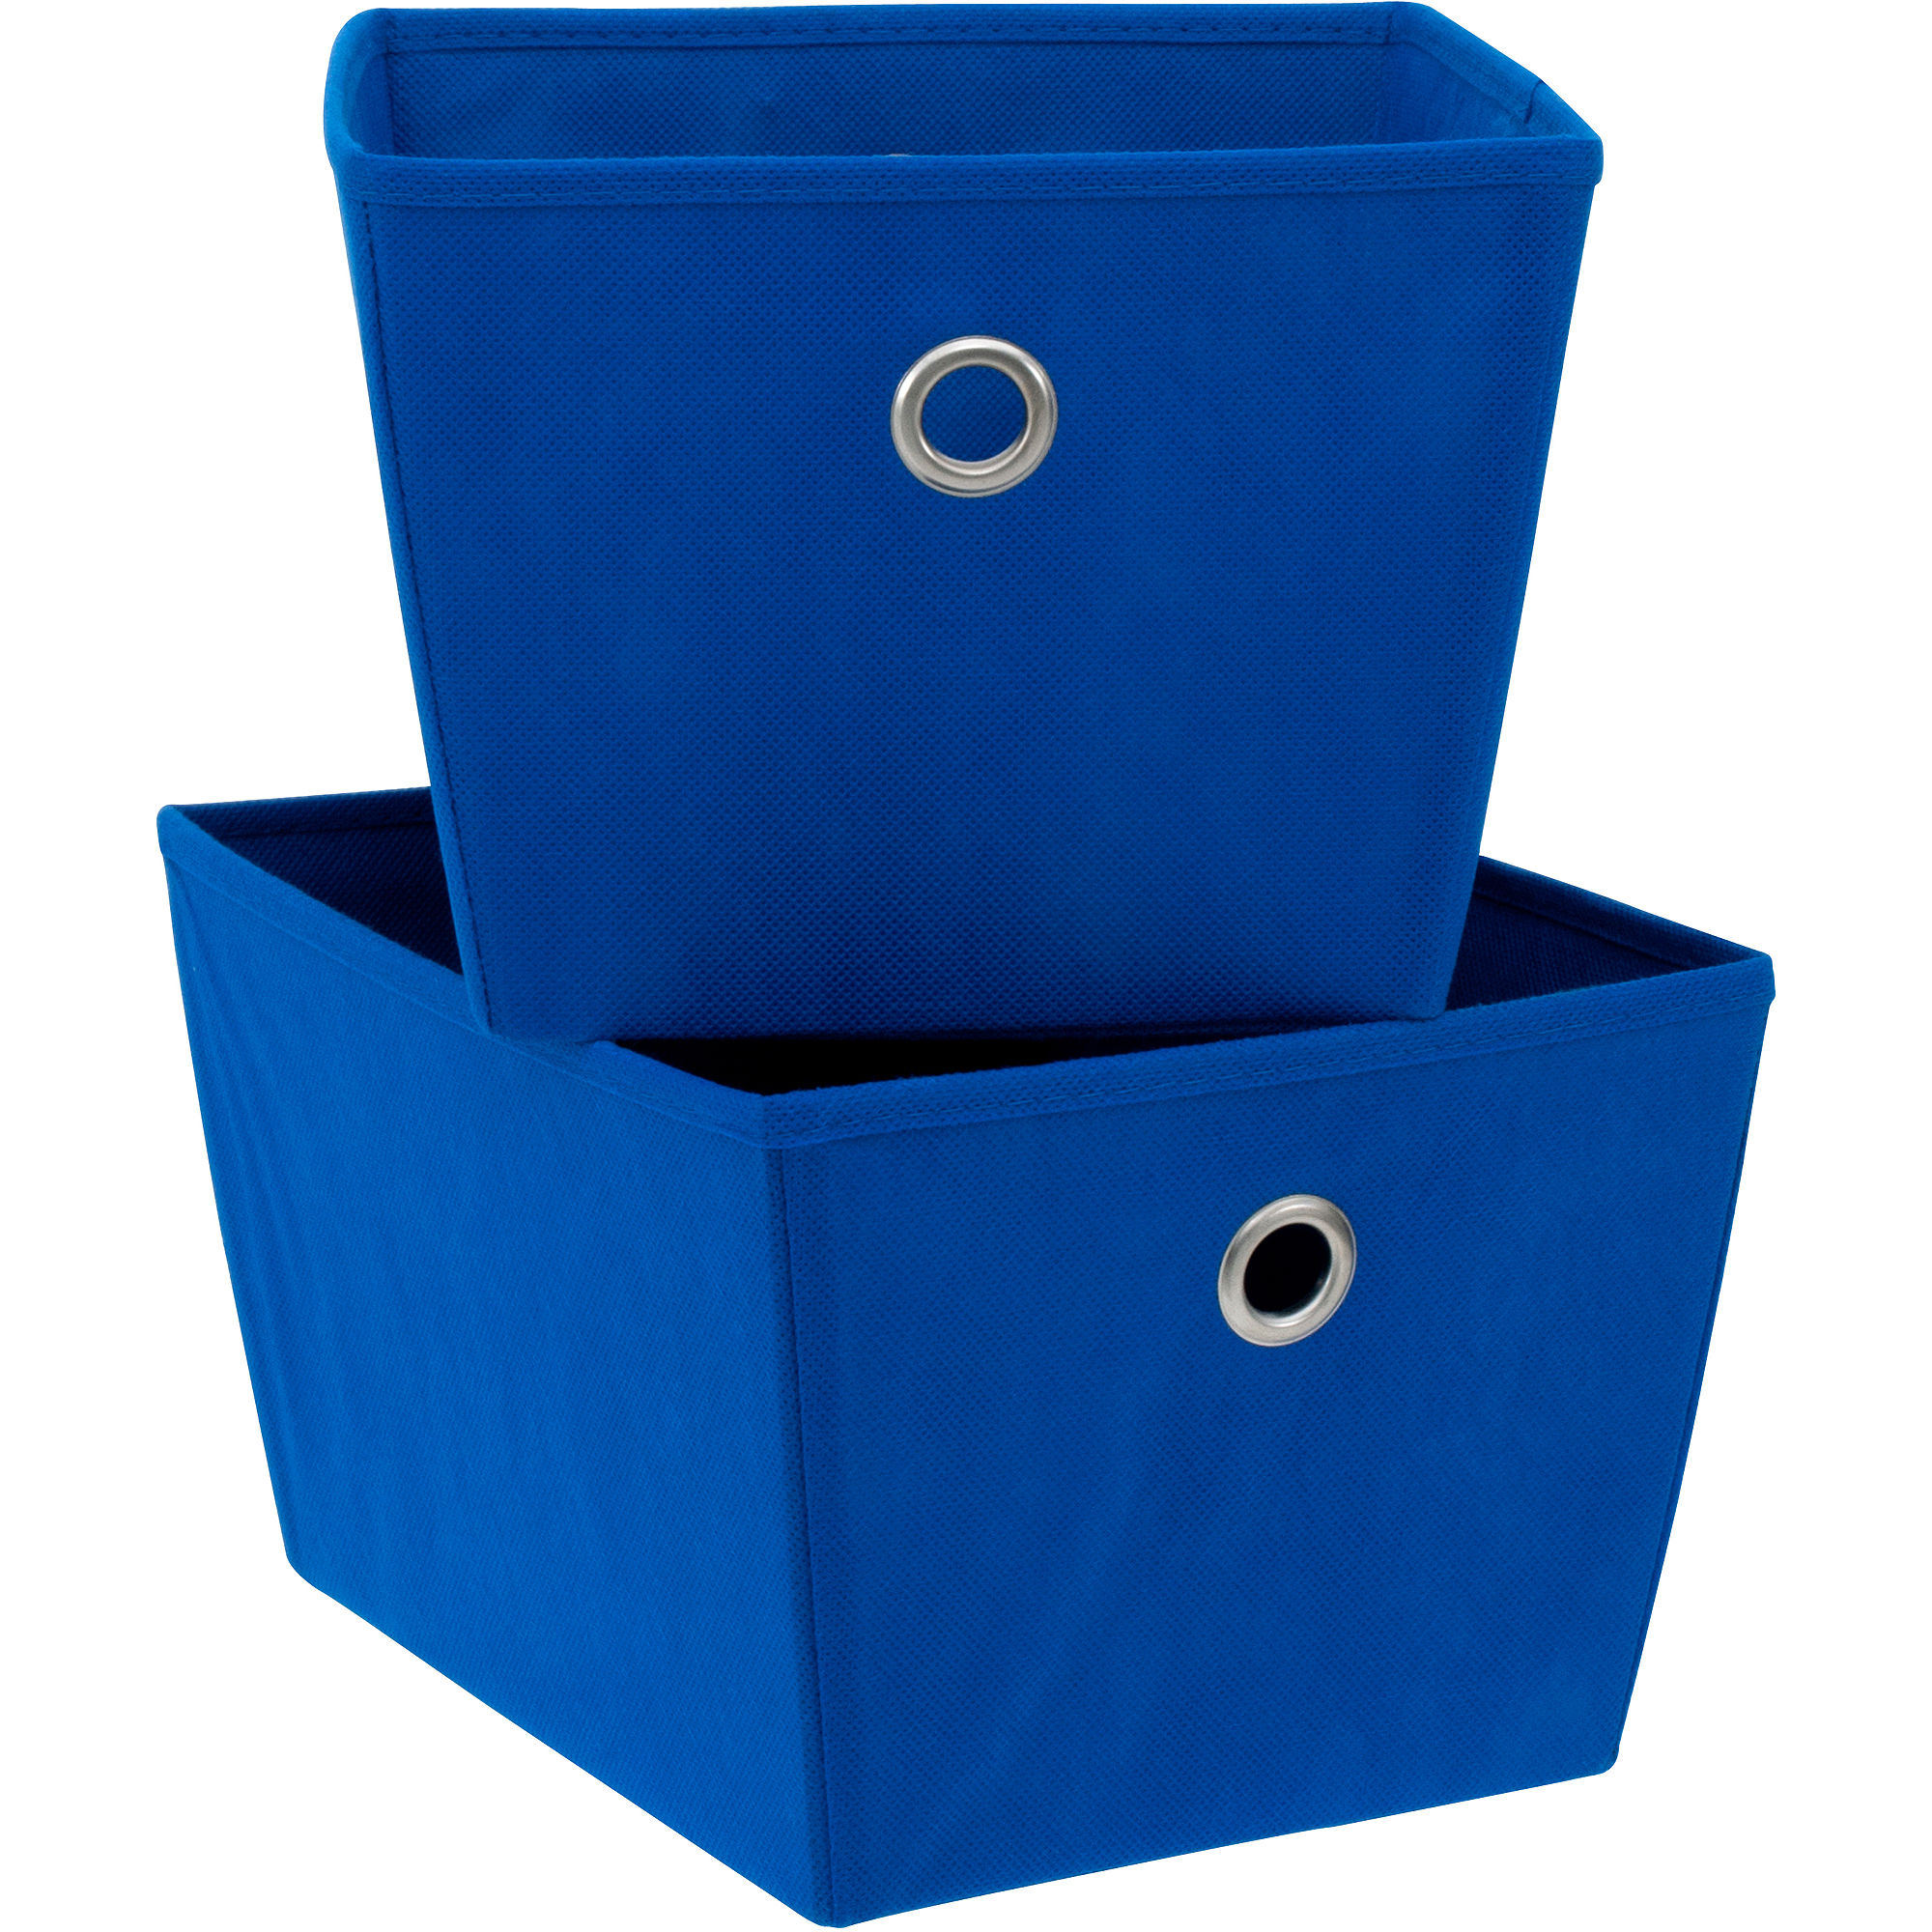 Mainstays Medium Non-Woven Bins, 3-Pack